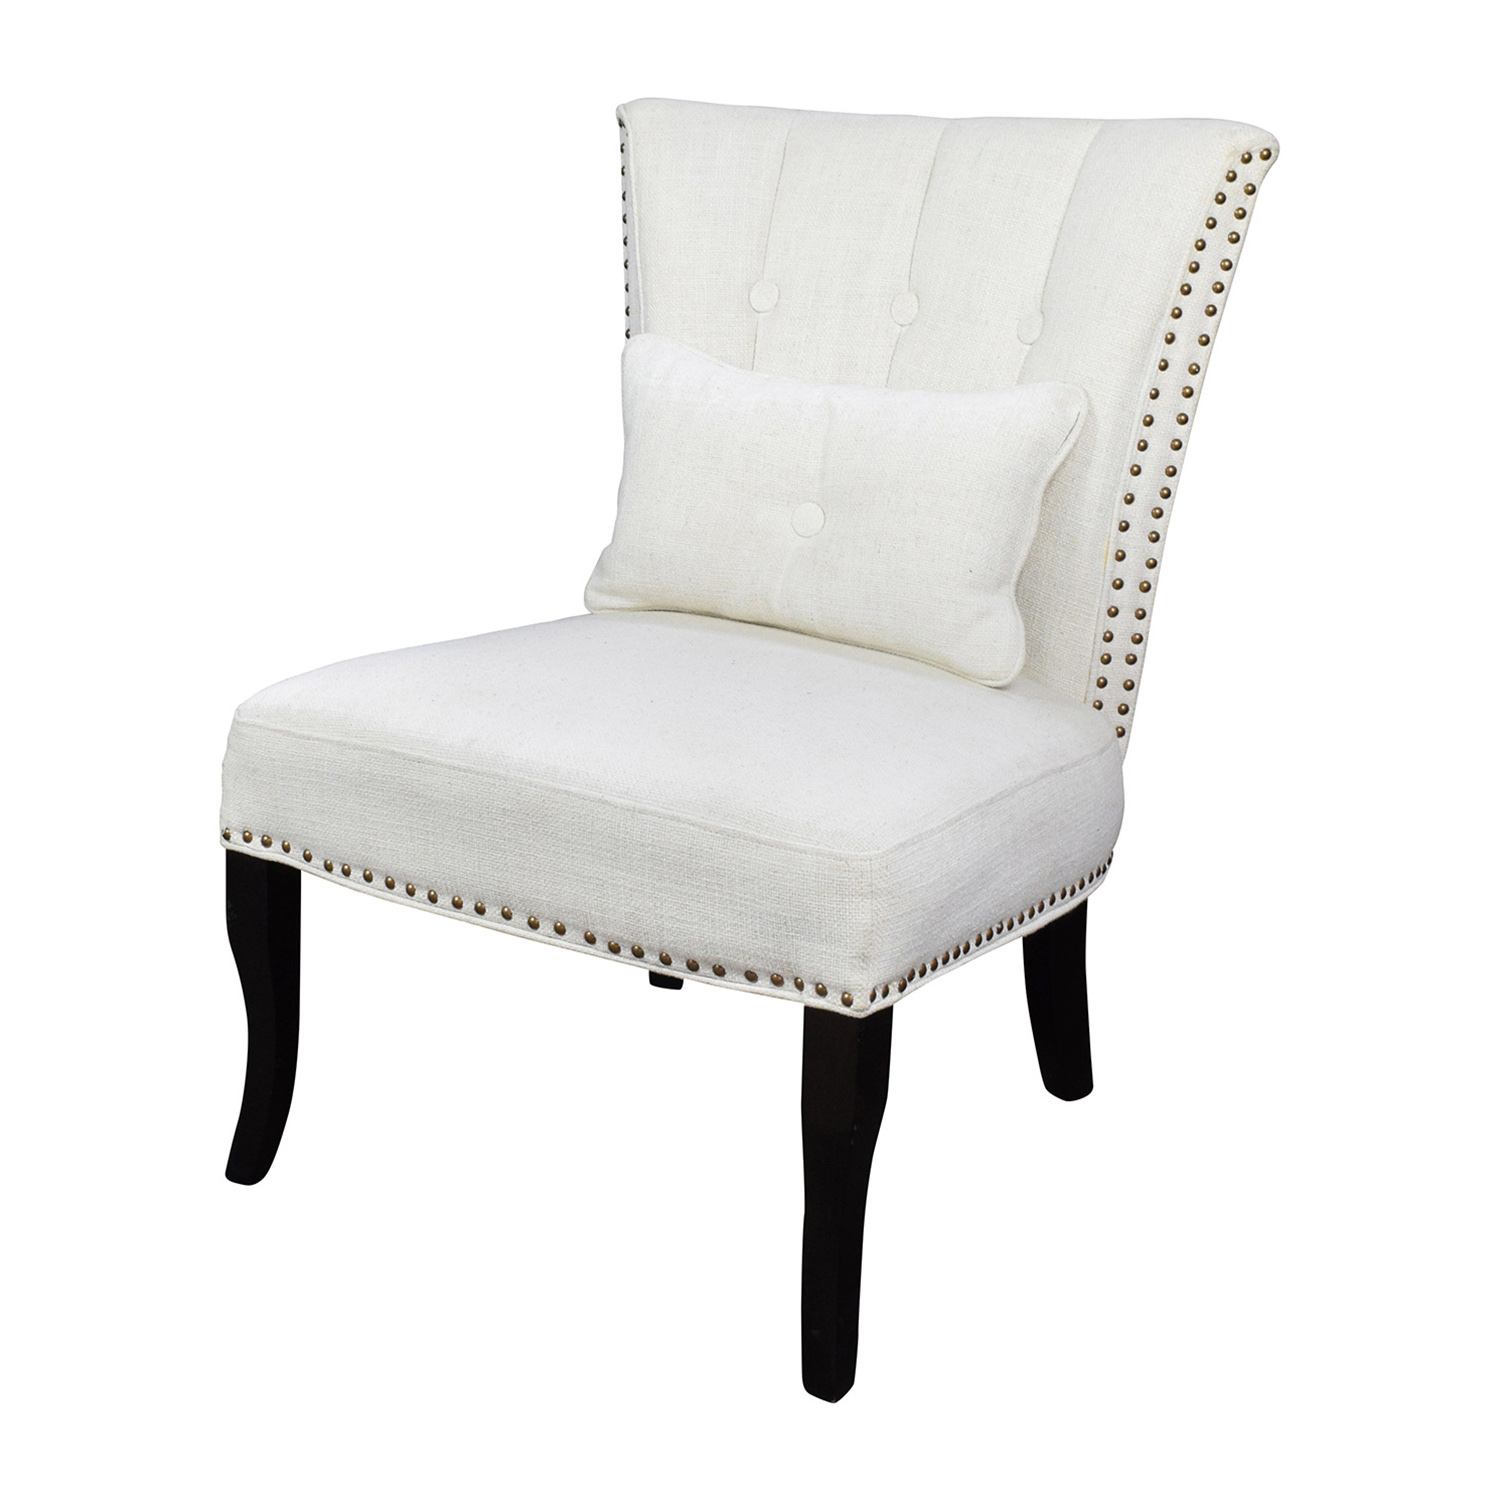 white tufted chairs under 100 66 off unkown accent chair